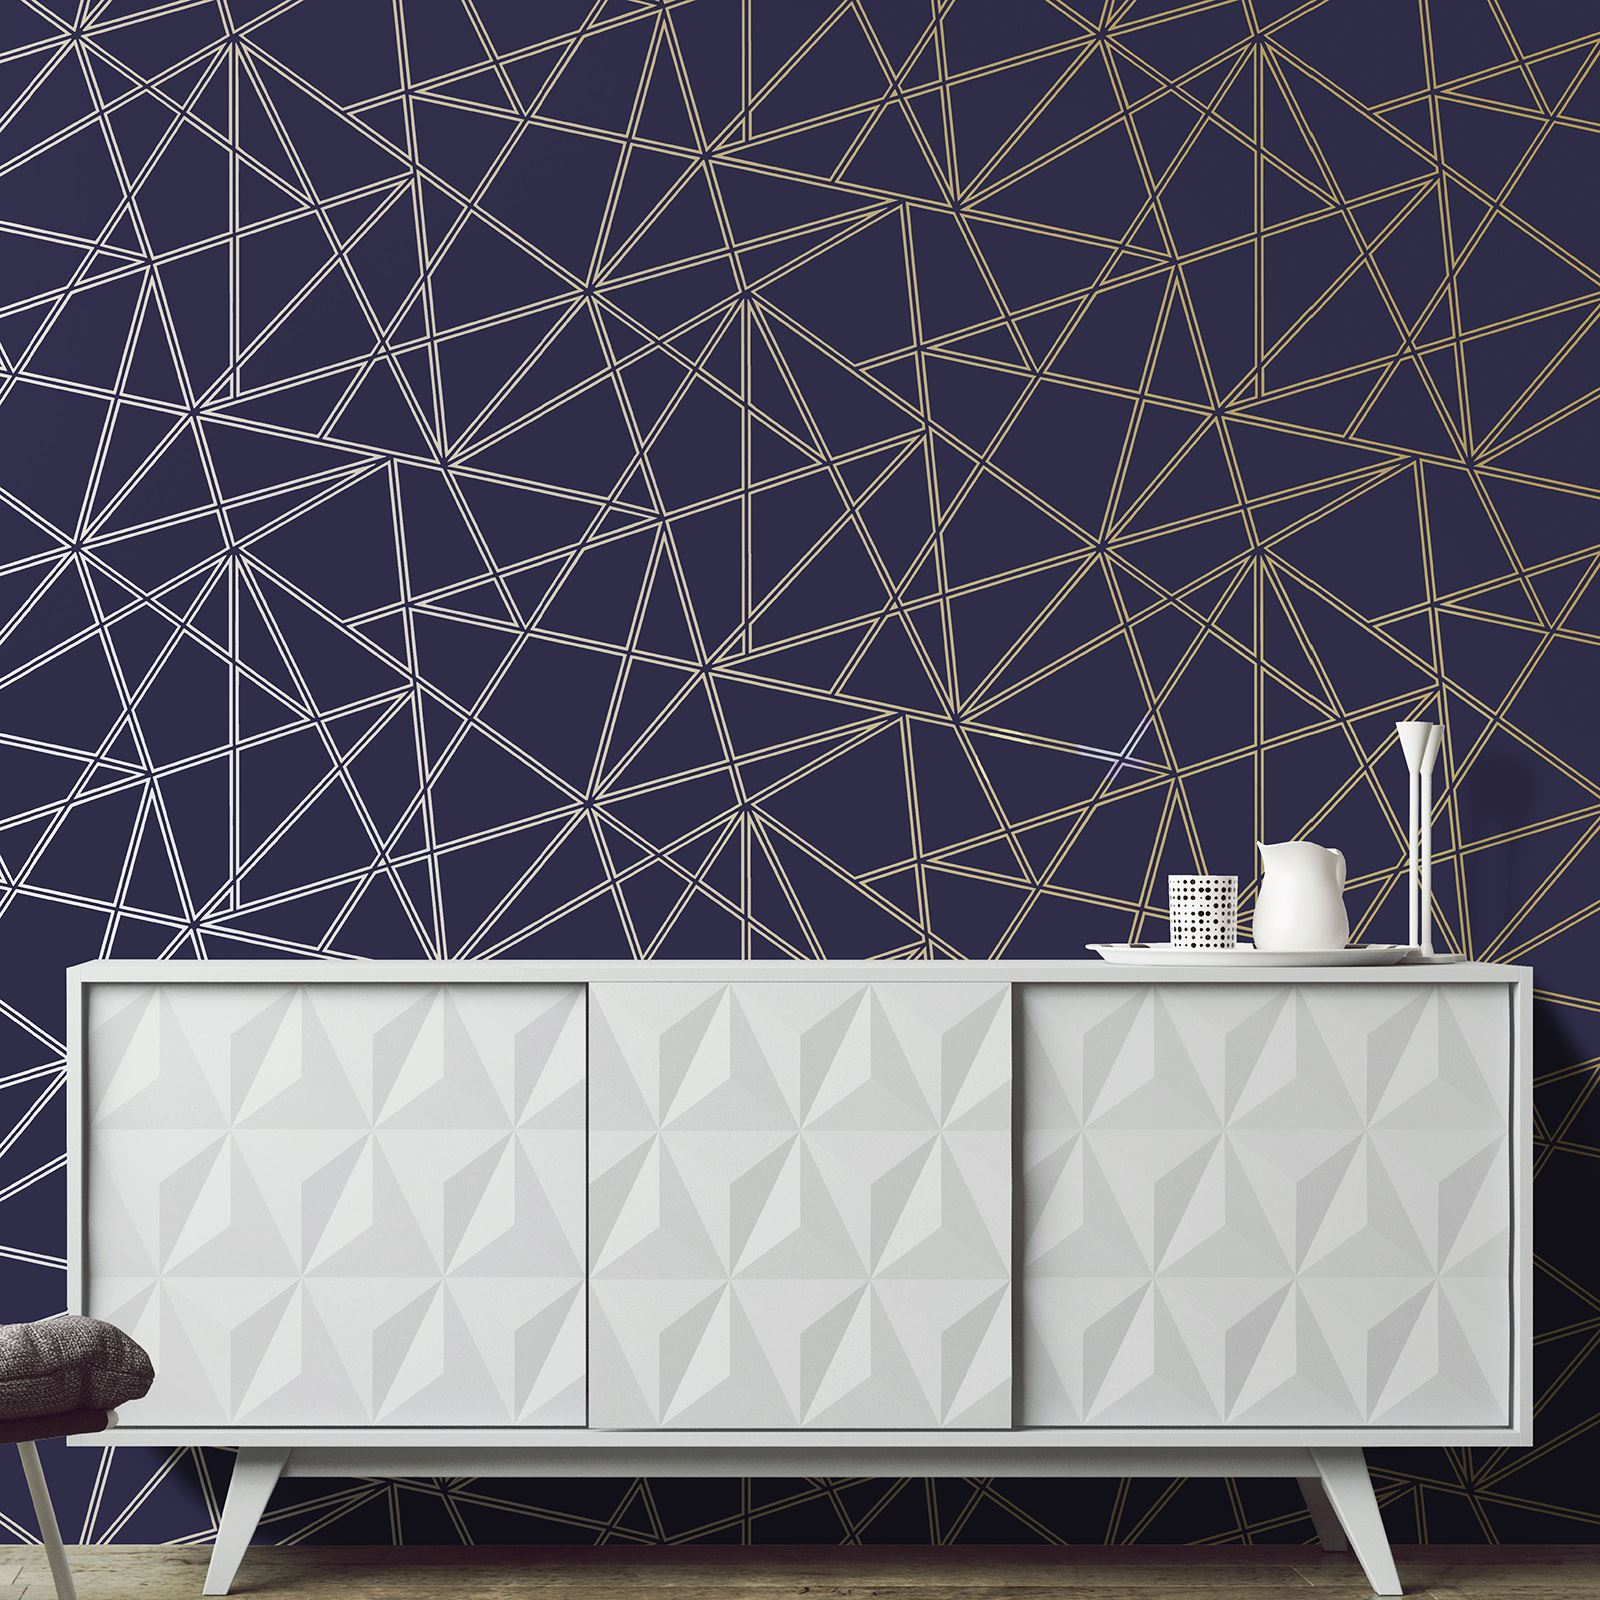 HOLDEN PALADIUM GEOMETRIC WALLPAPER ABSTRACT TRIANGLES METALLIC SILVER ROSE GOLD